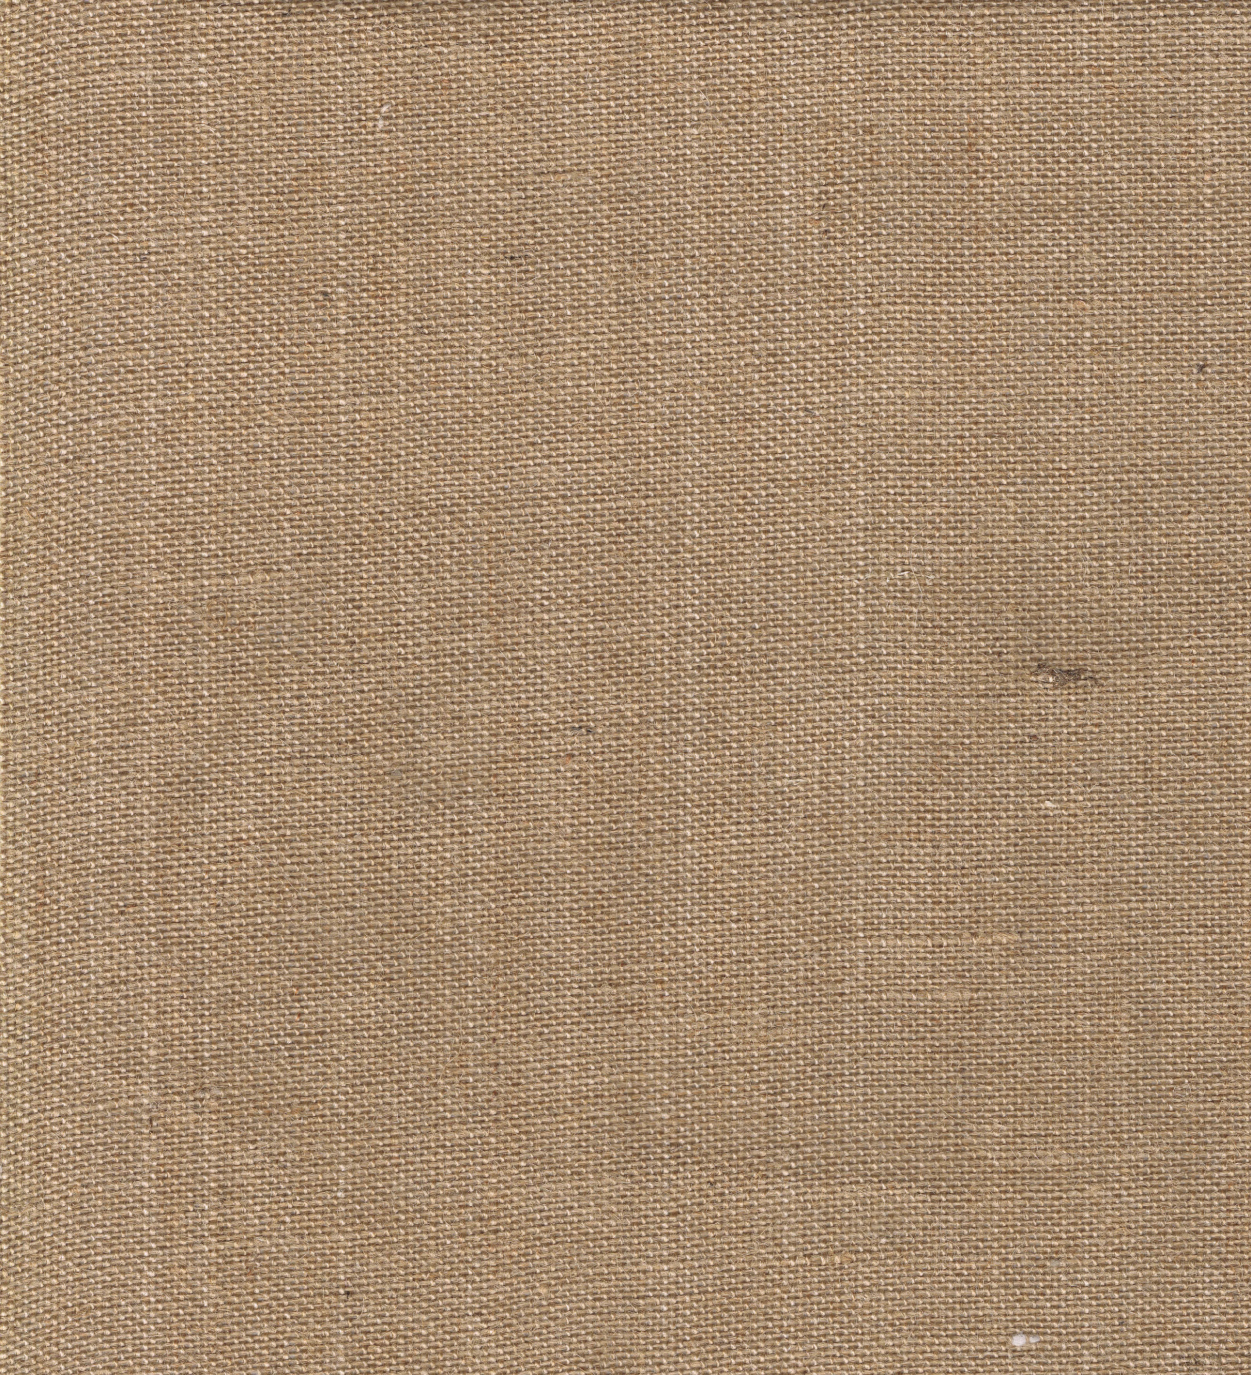 burlap  cork  u0026 cardboard texture background printables